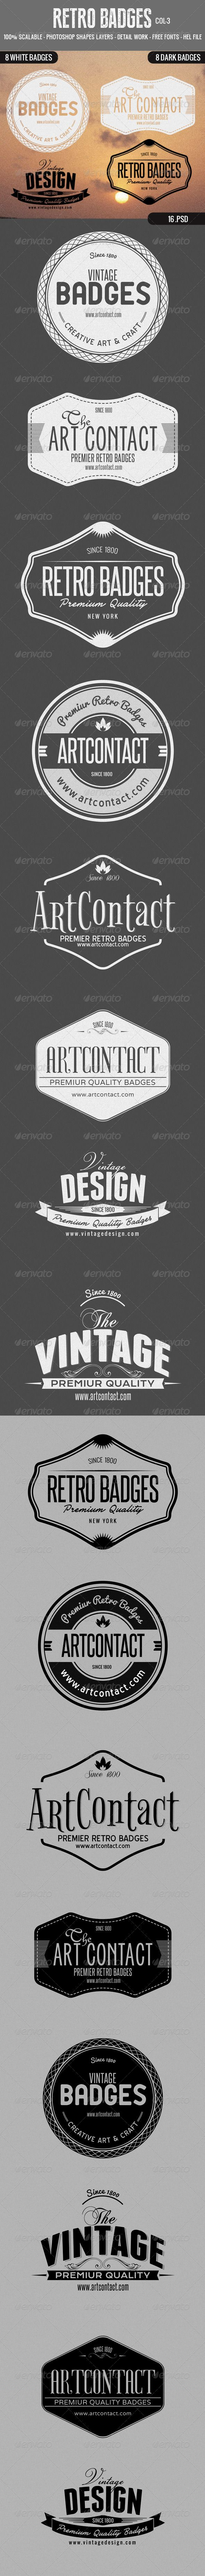 Retro Badges Col 3  #GraphicRiver         8 Retro Badges collection  	 8 Dark and 8 White Badges  	 16 Fully layered PSDs  	 All Photoshop shapes are fully layered and fully scalable Fully editable shapes & font  	 All free fonts used, hyperlink attached in the file  	 The file includes: 16 Photoshop badges files Help-file with usage instructions included File with details of free Font link included  	 Please rate it!     Created: 10June13 GraphicsFilesIncluded: PhotoshopPSD HighResolution…